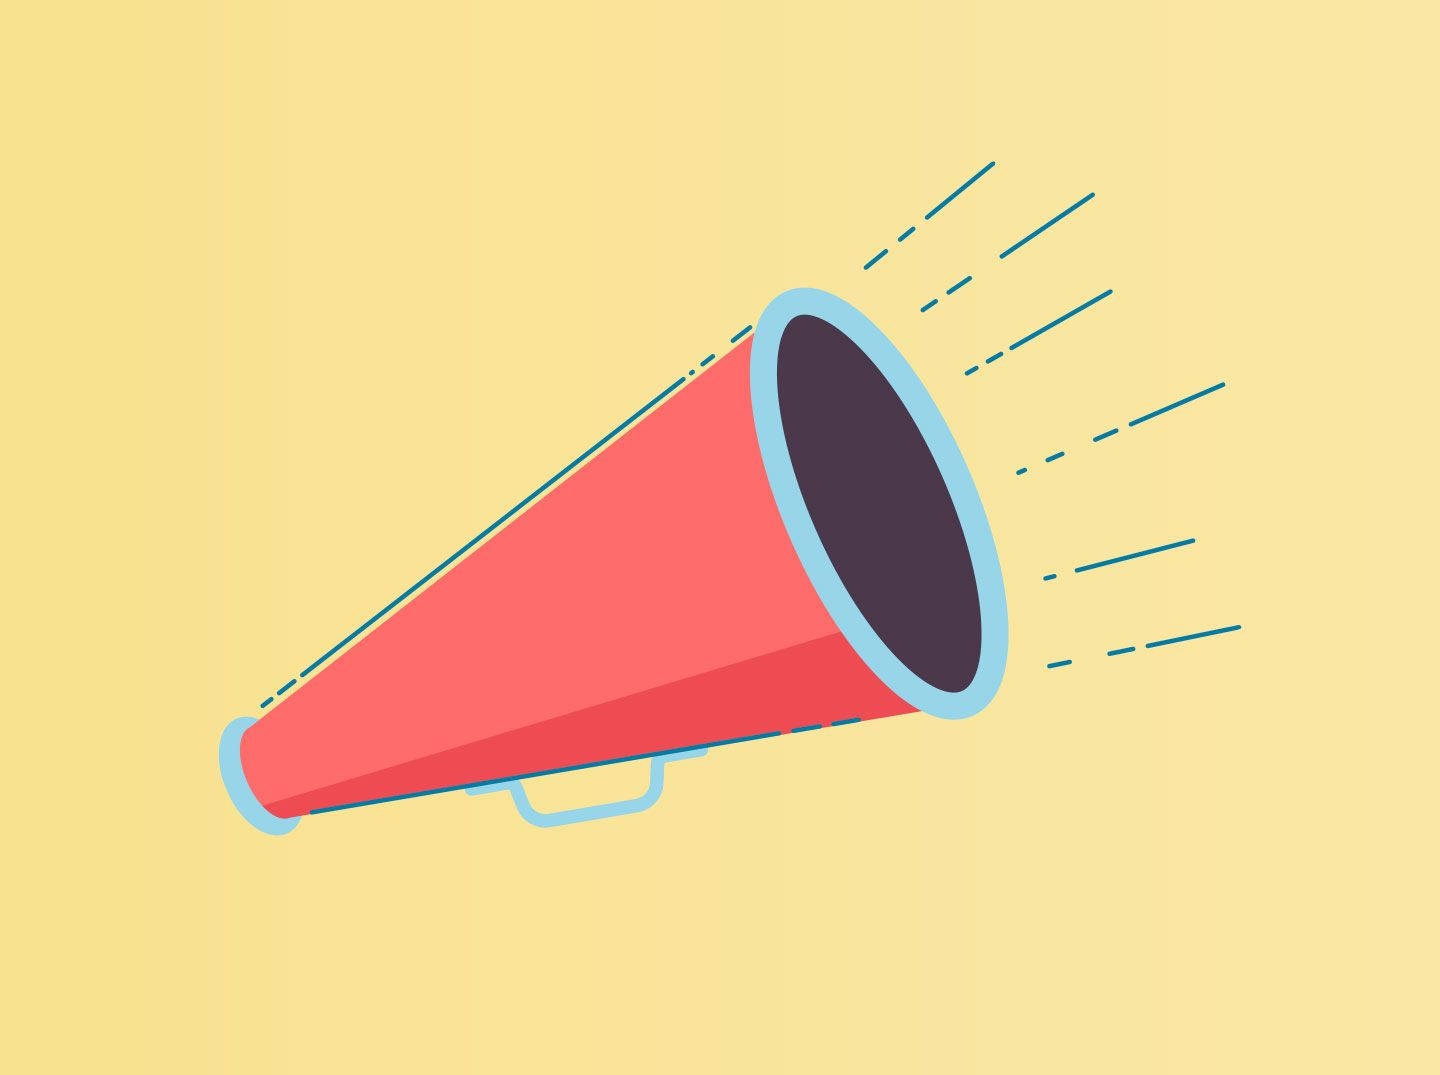 Illustration of a red megaphone on a yellow background